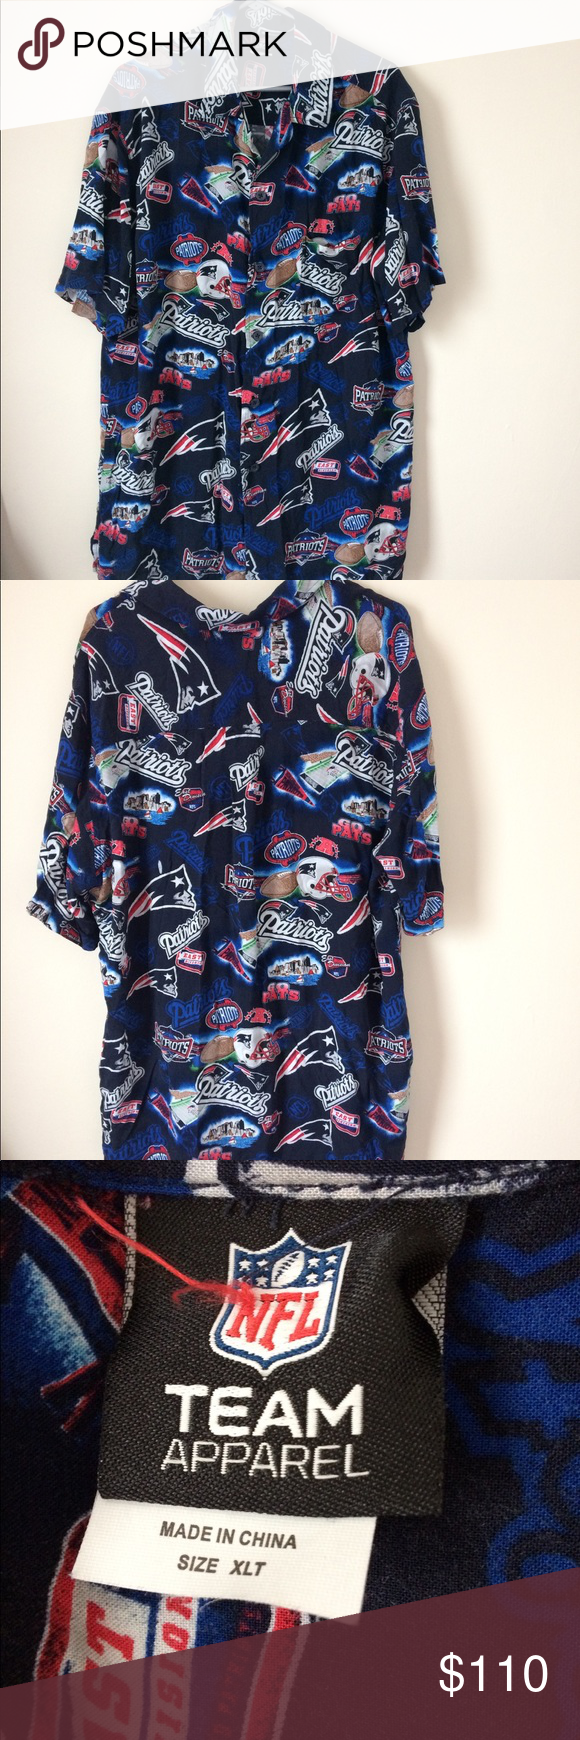 9128322cc4d Men's NE patriots Hawaiian style shirt Men's New England Patriots Hawaiian  style shirt. I believe it's vintage. In amazing preowned condition. Size XL  tall.